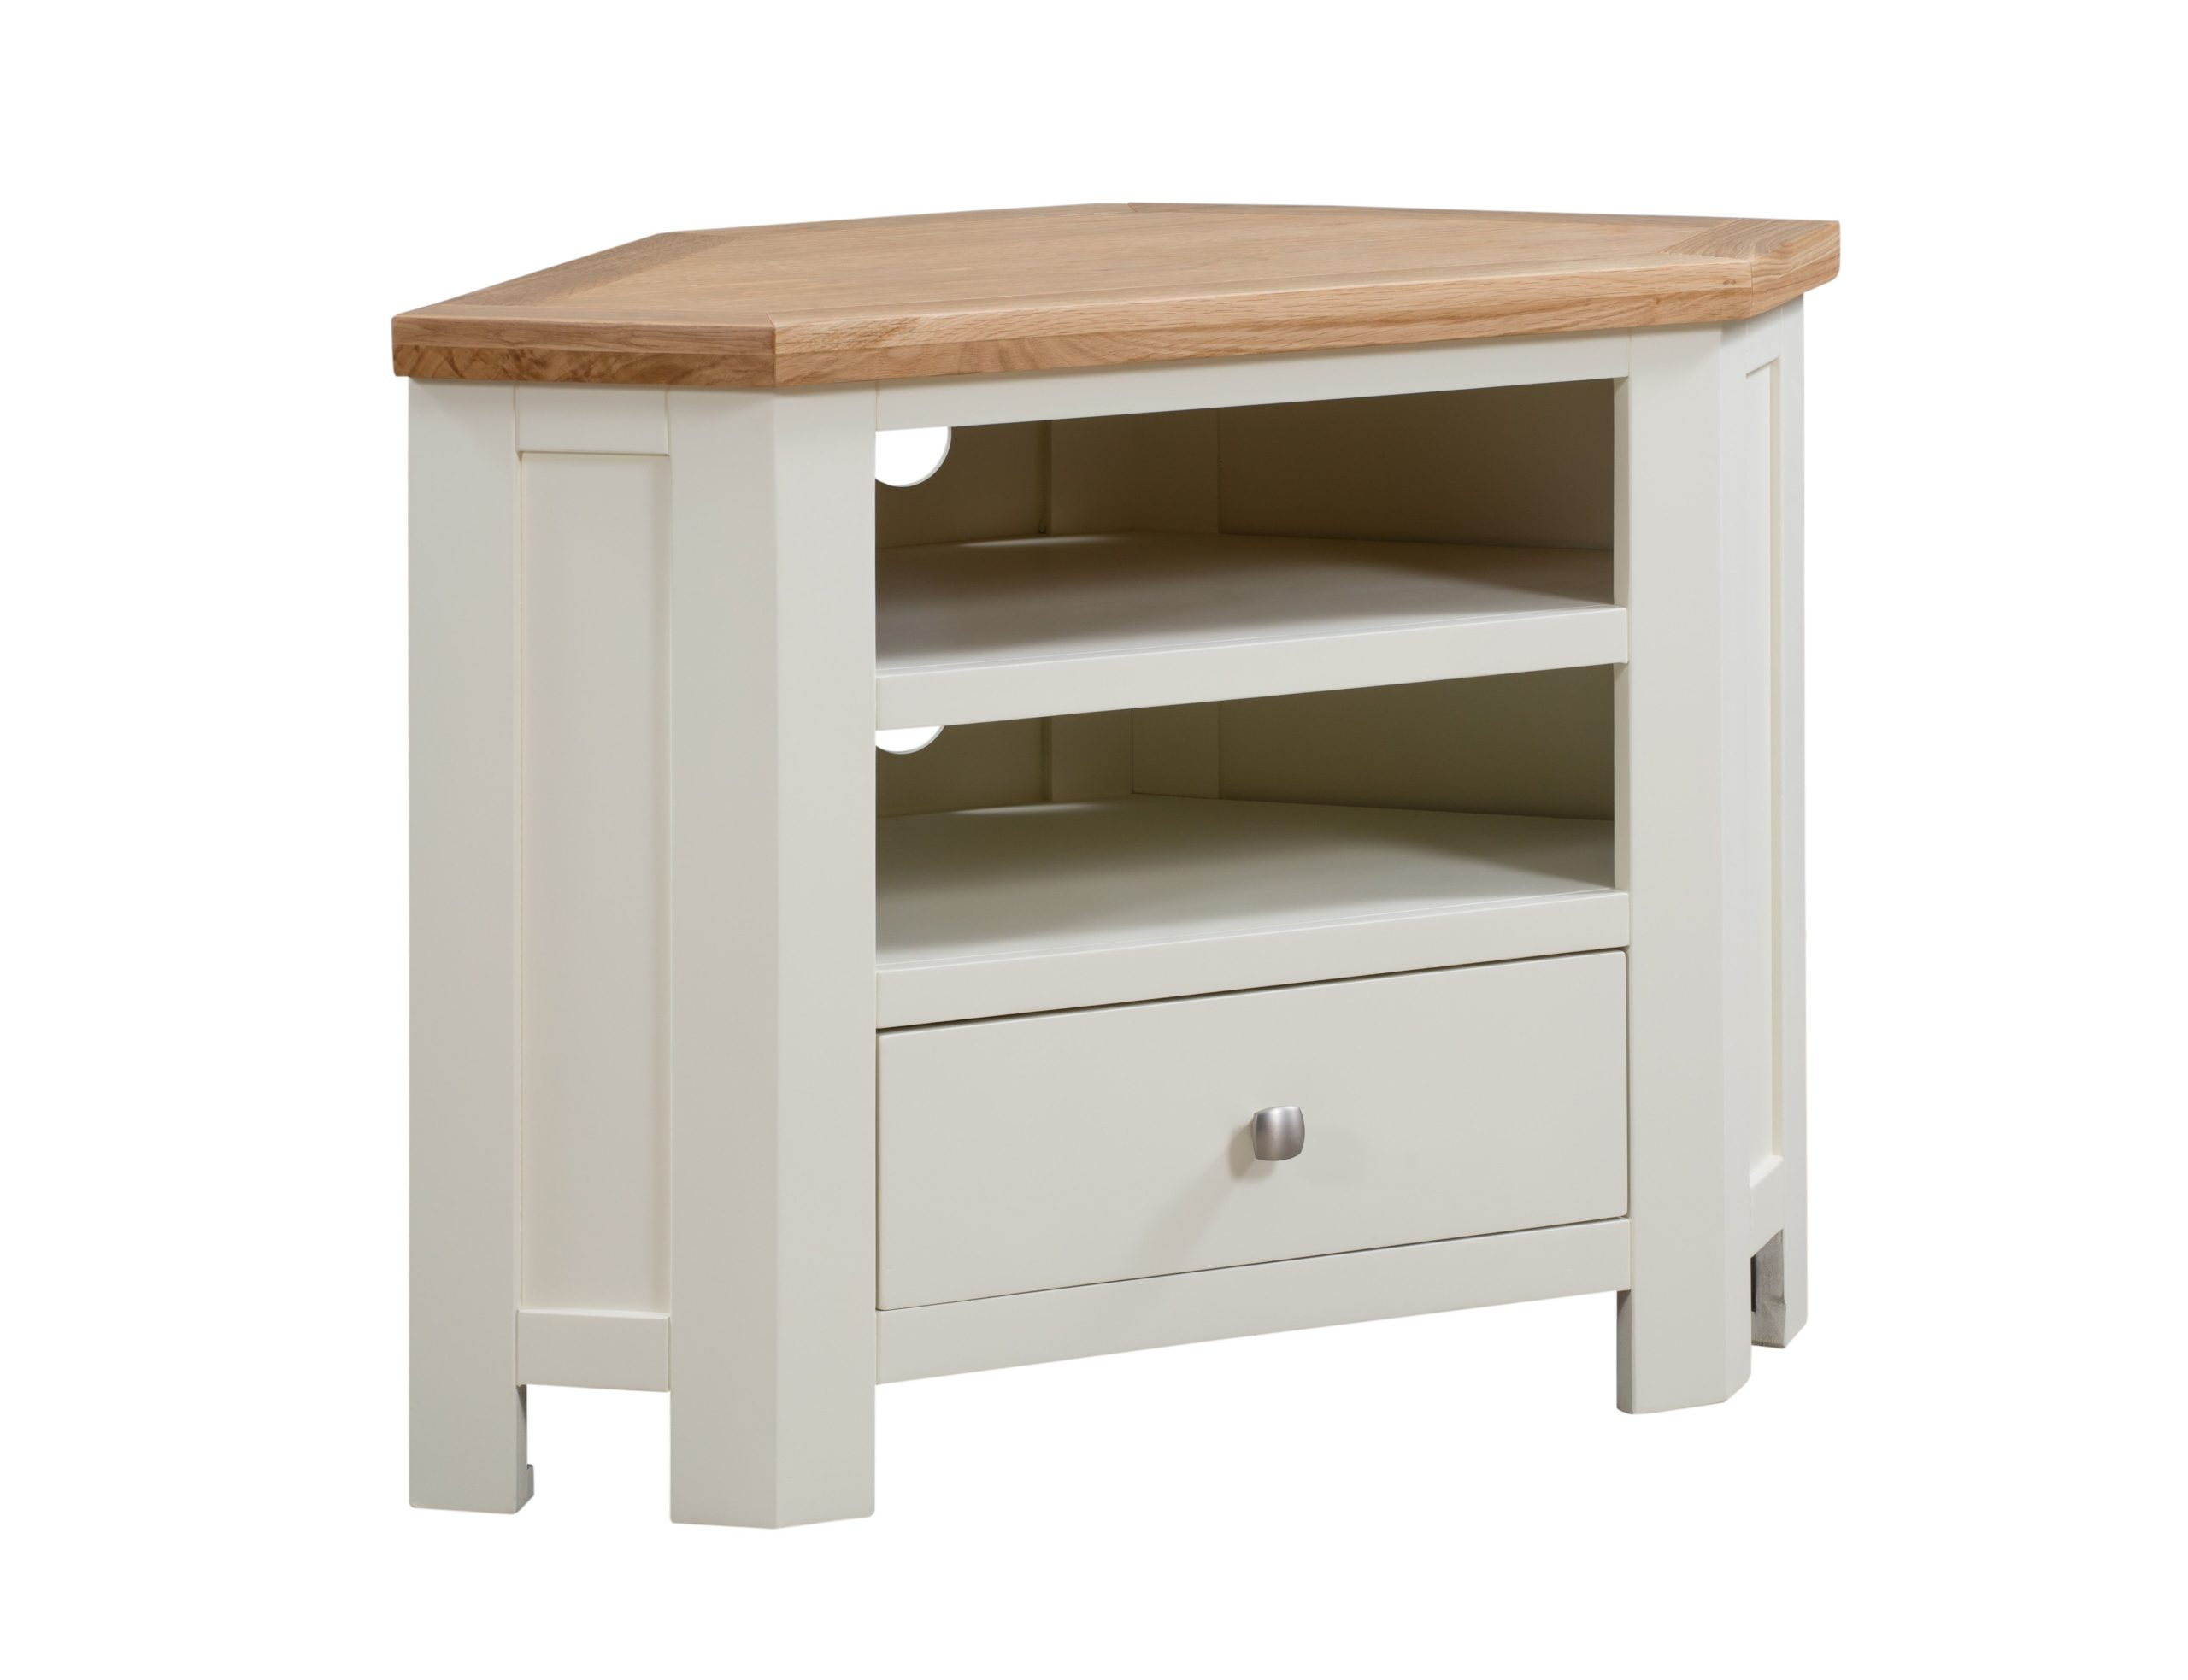 Dorset painted corner tv unit with shelf and drawer and oak top